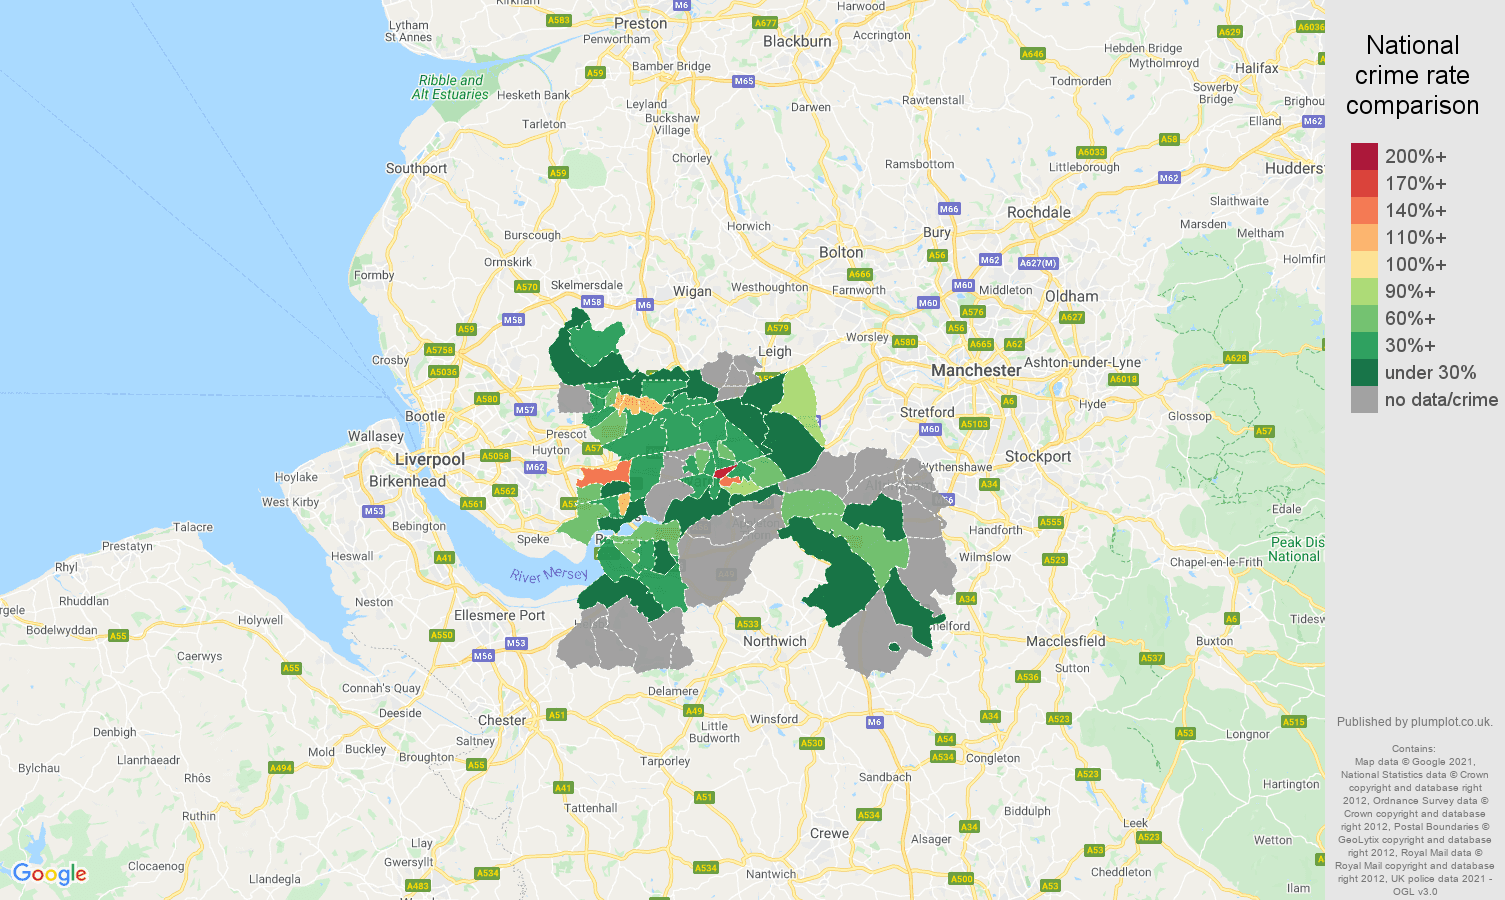 Warrington robbery crime rate comparison map